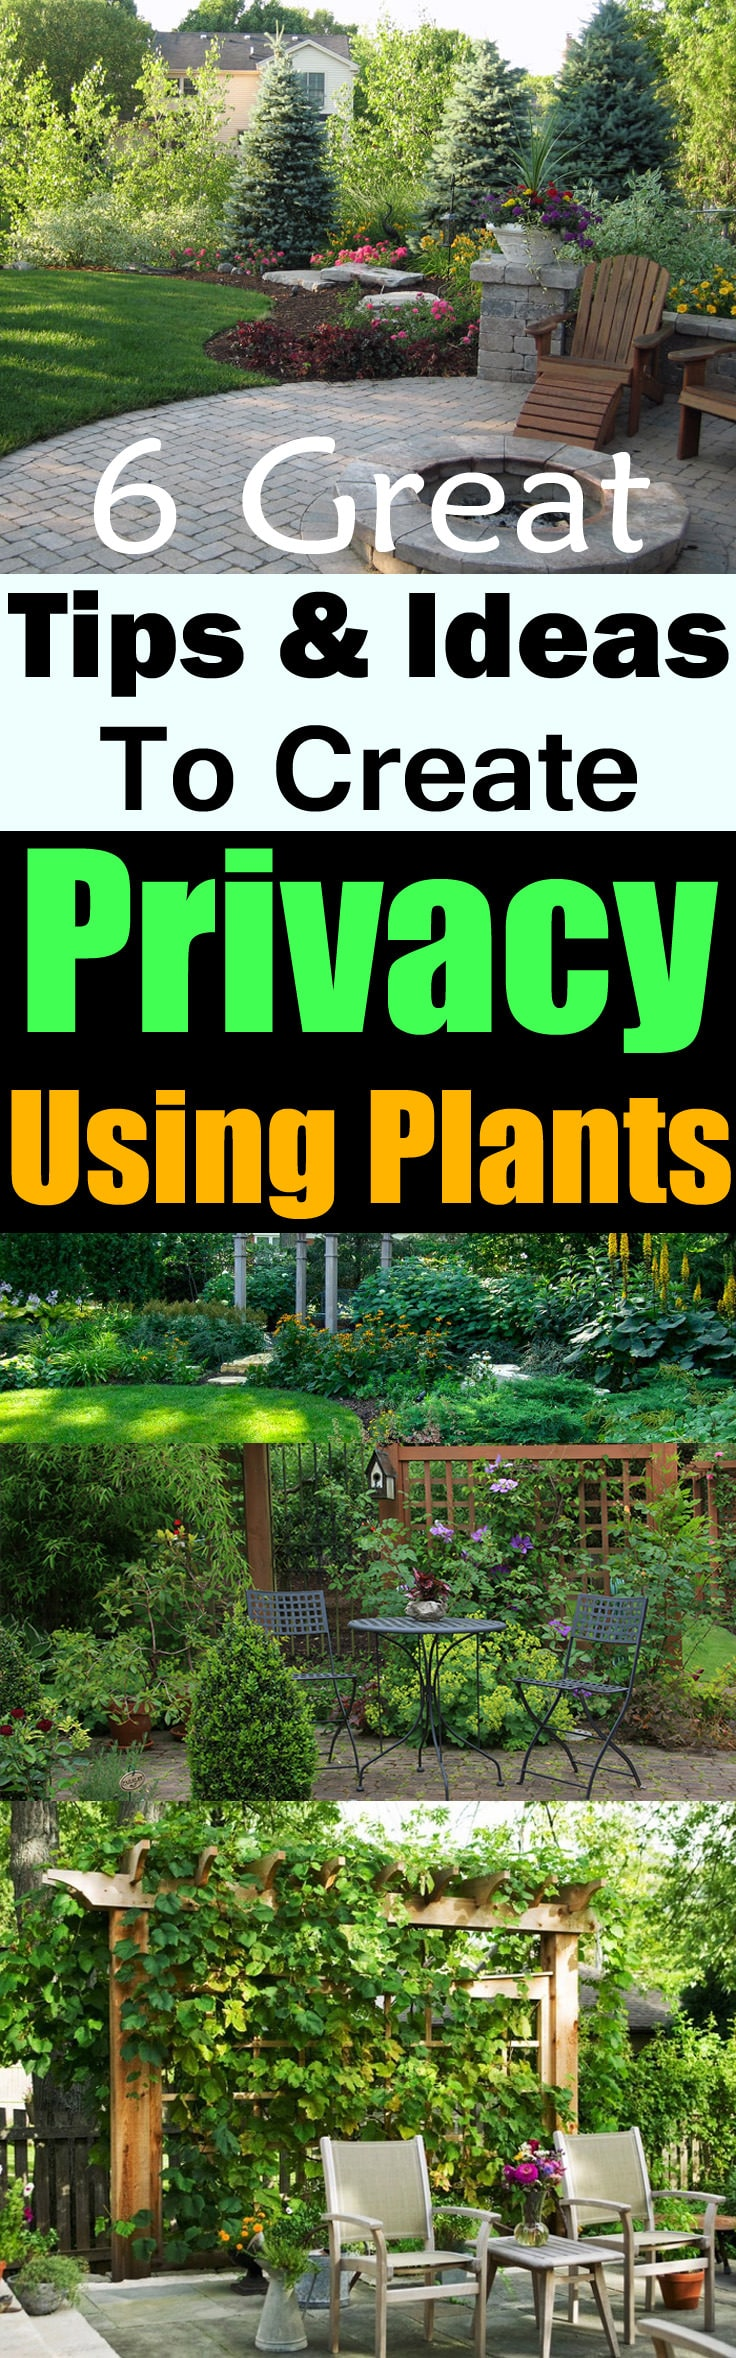 If you want to create privacy to save yourself from prying eyes, Use plants! Plants also improve the curb appeal and provide naturalness. Check out these 6 Tips & Ideas!